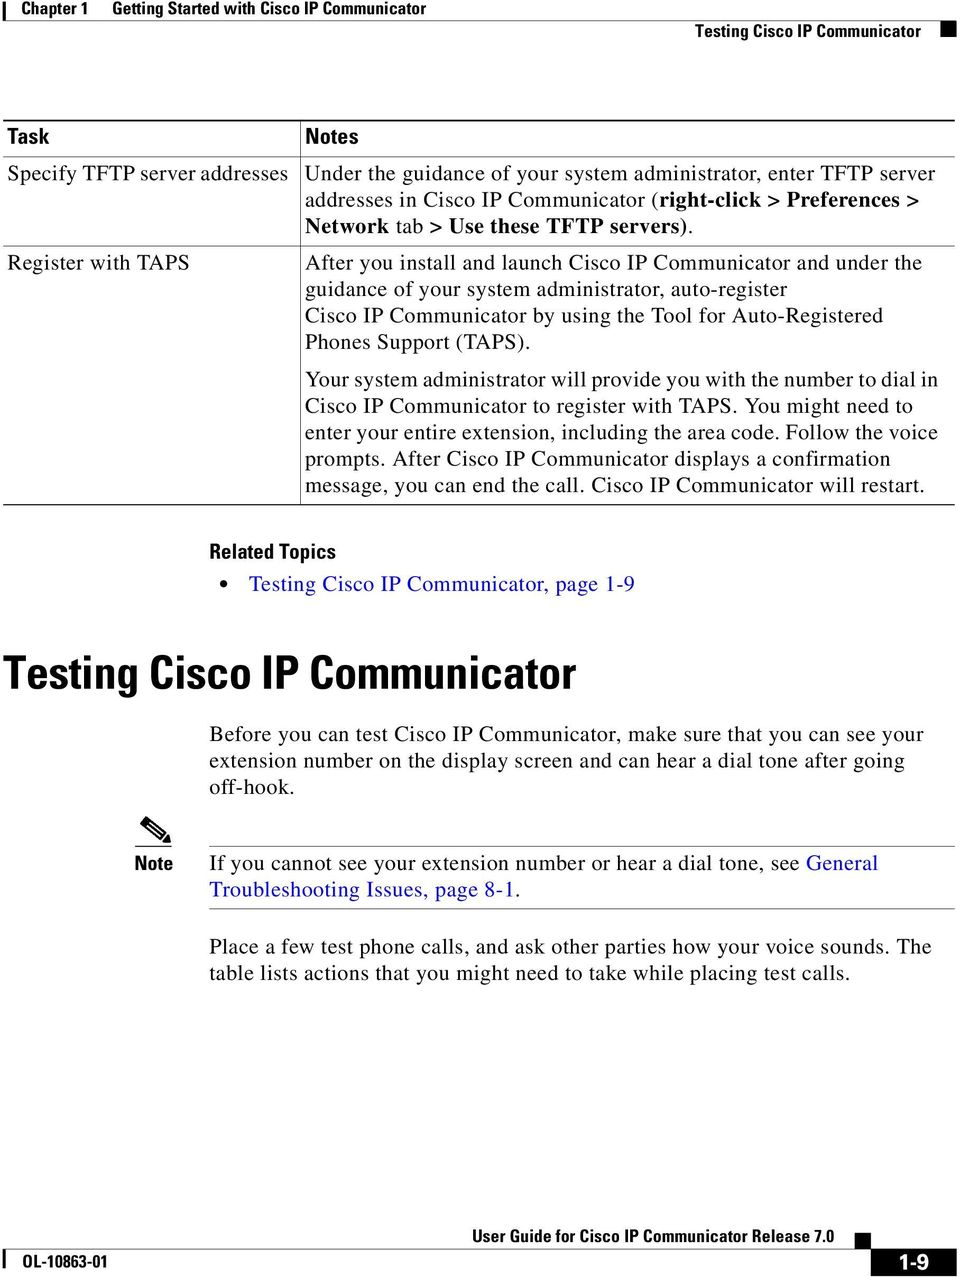 Register with TAPS After you install and launch Cisco IP Communicator and under the guidance of your system administrator, auto-register Cisco IP Communicator by using the Tool for Auto-Registered